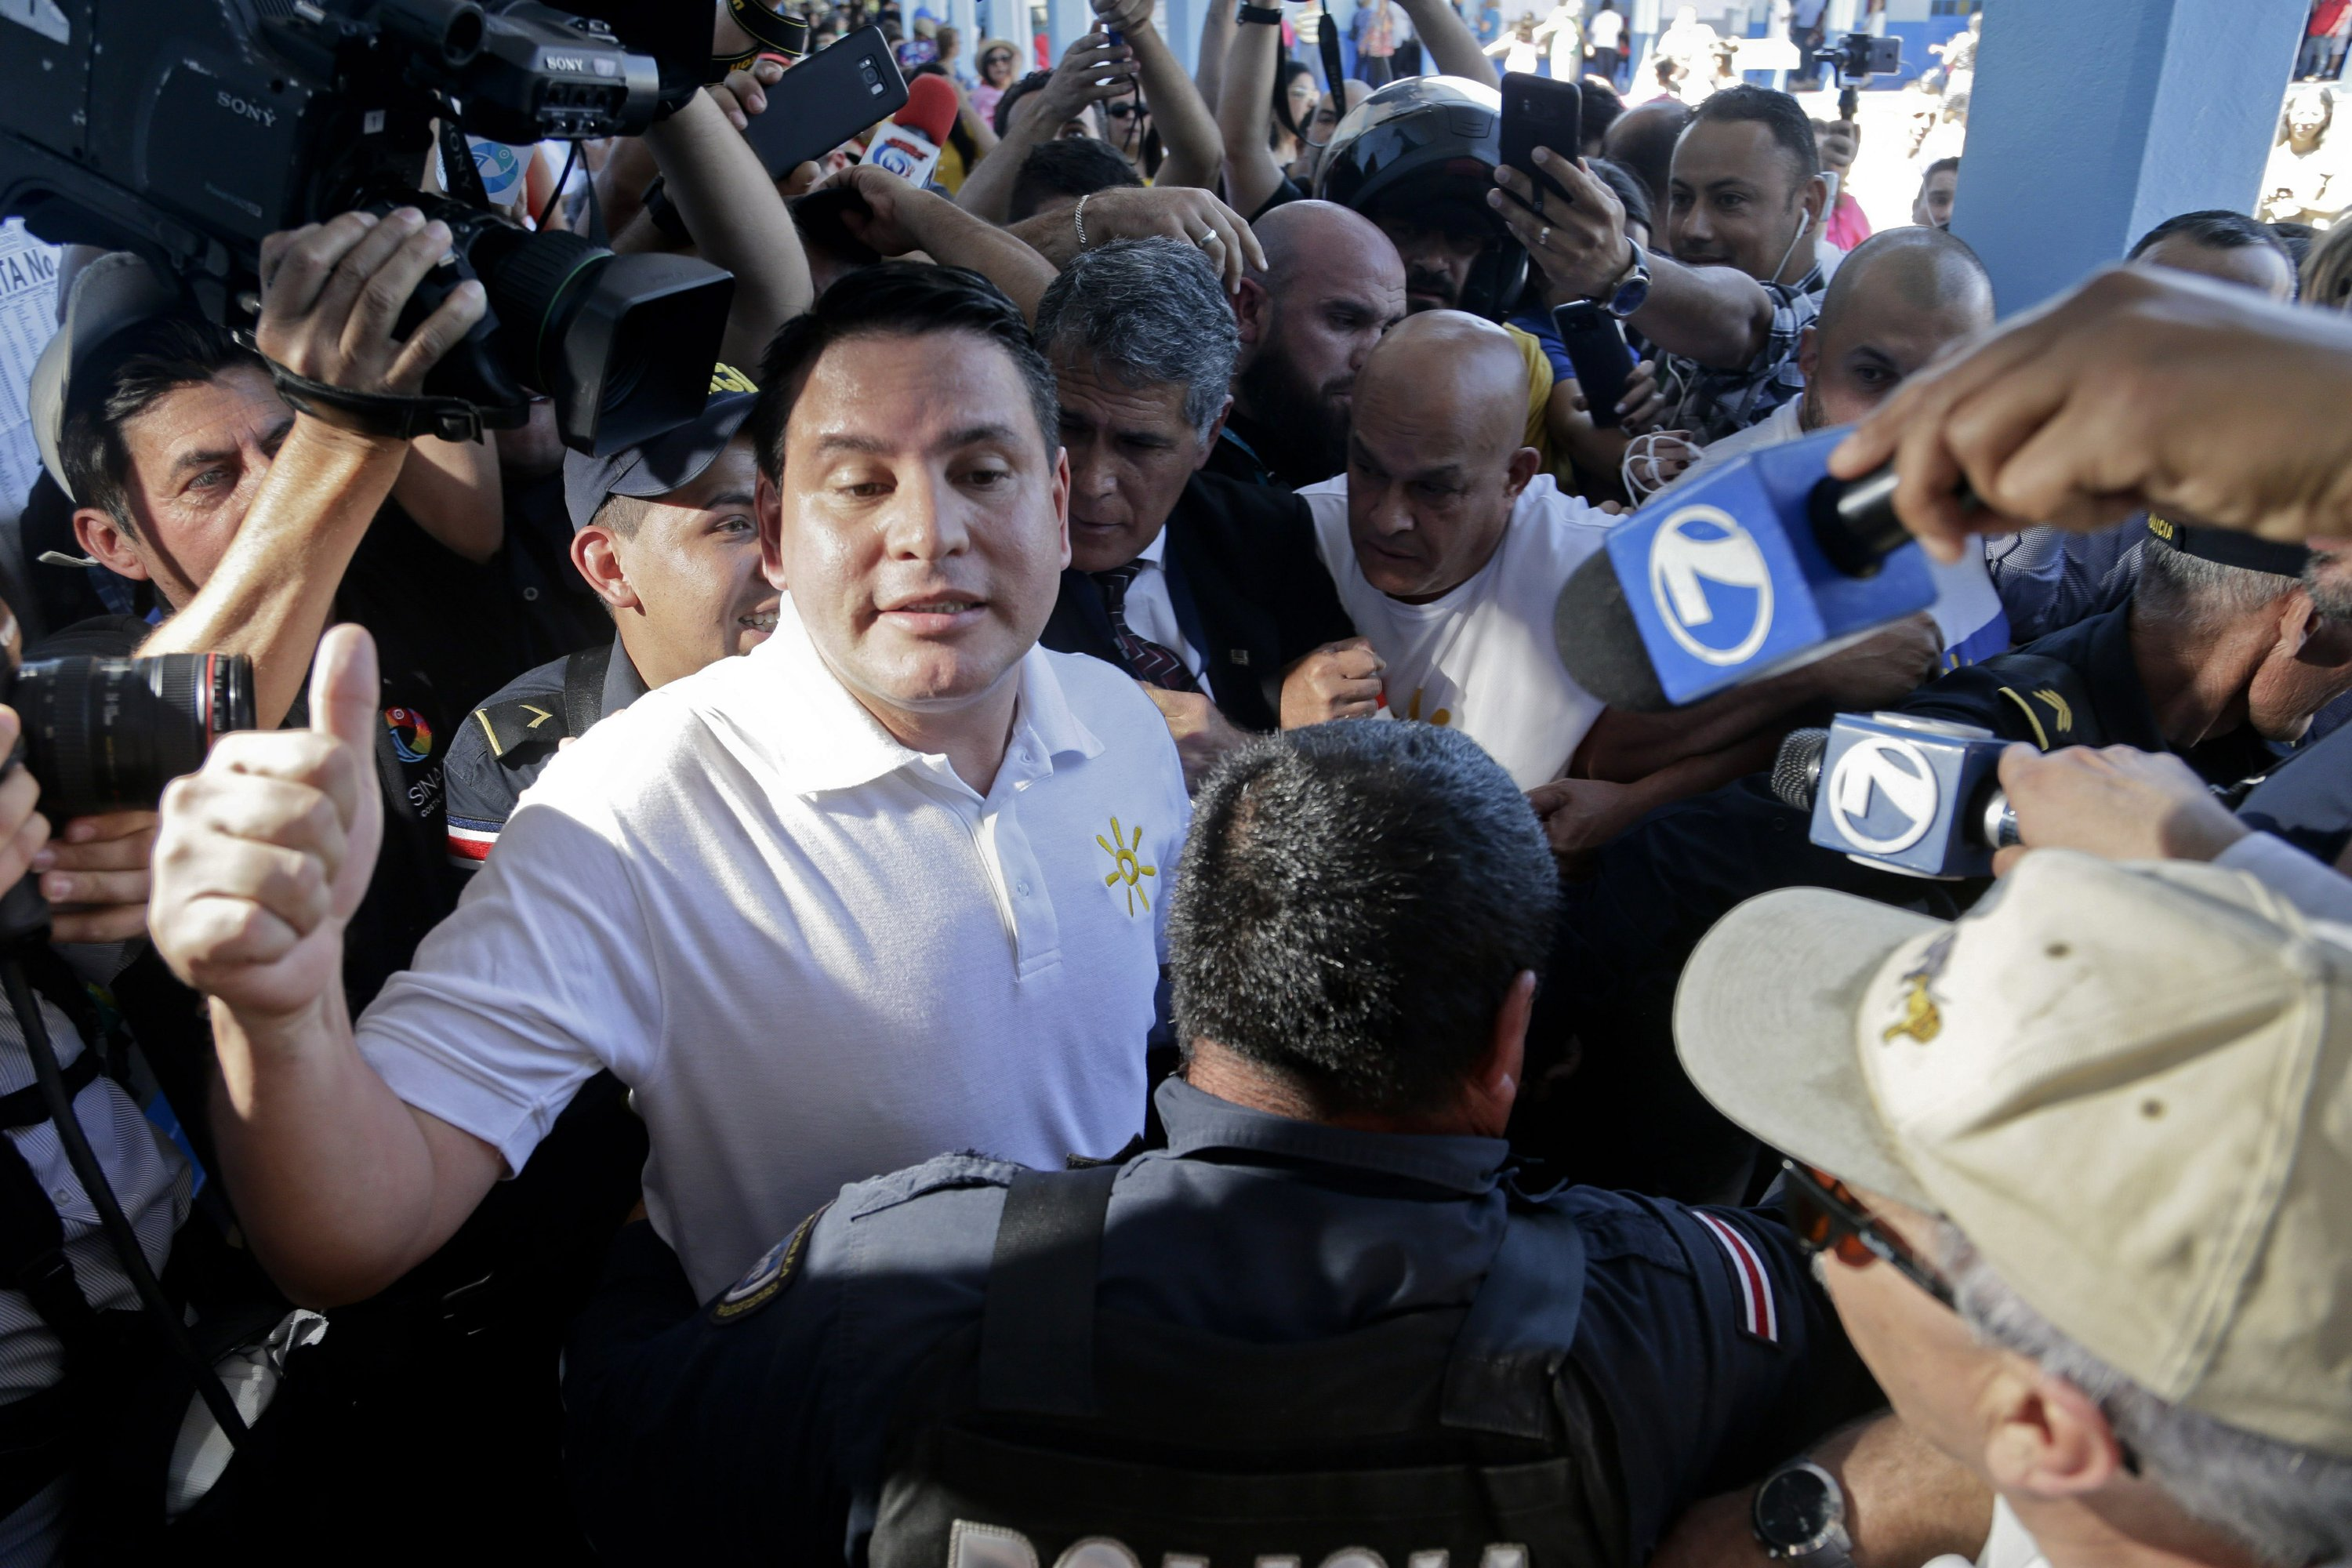 Evangelical, ruling party candidate lead in Costa Rica vote